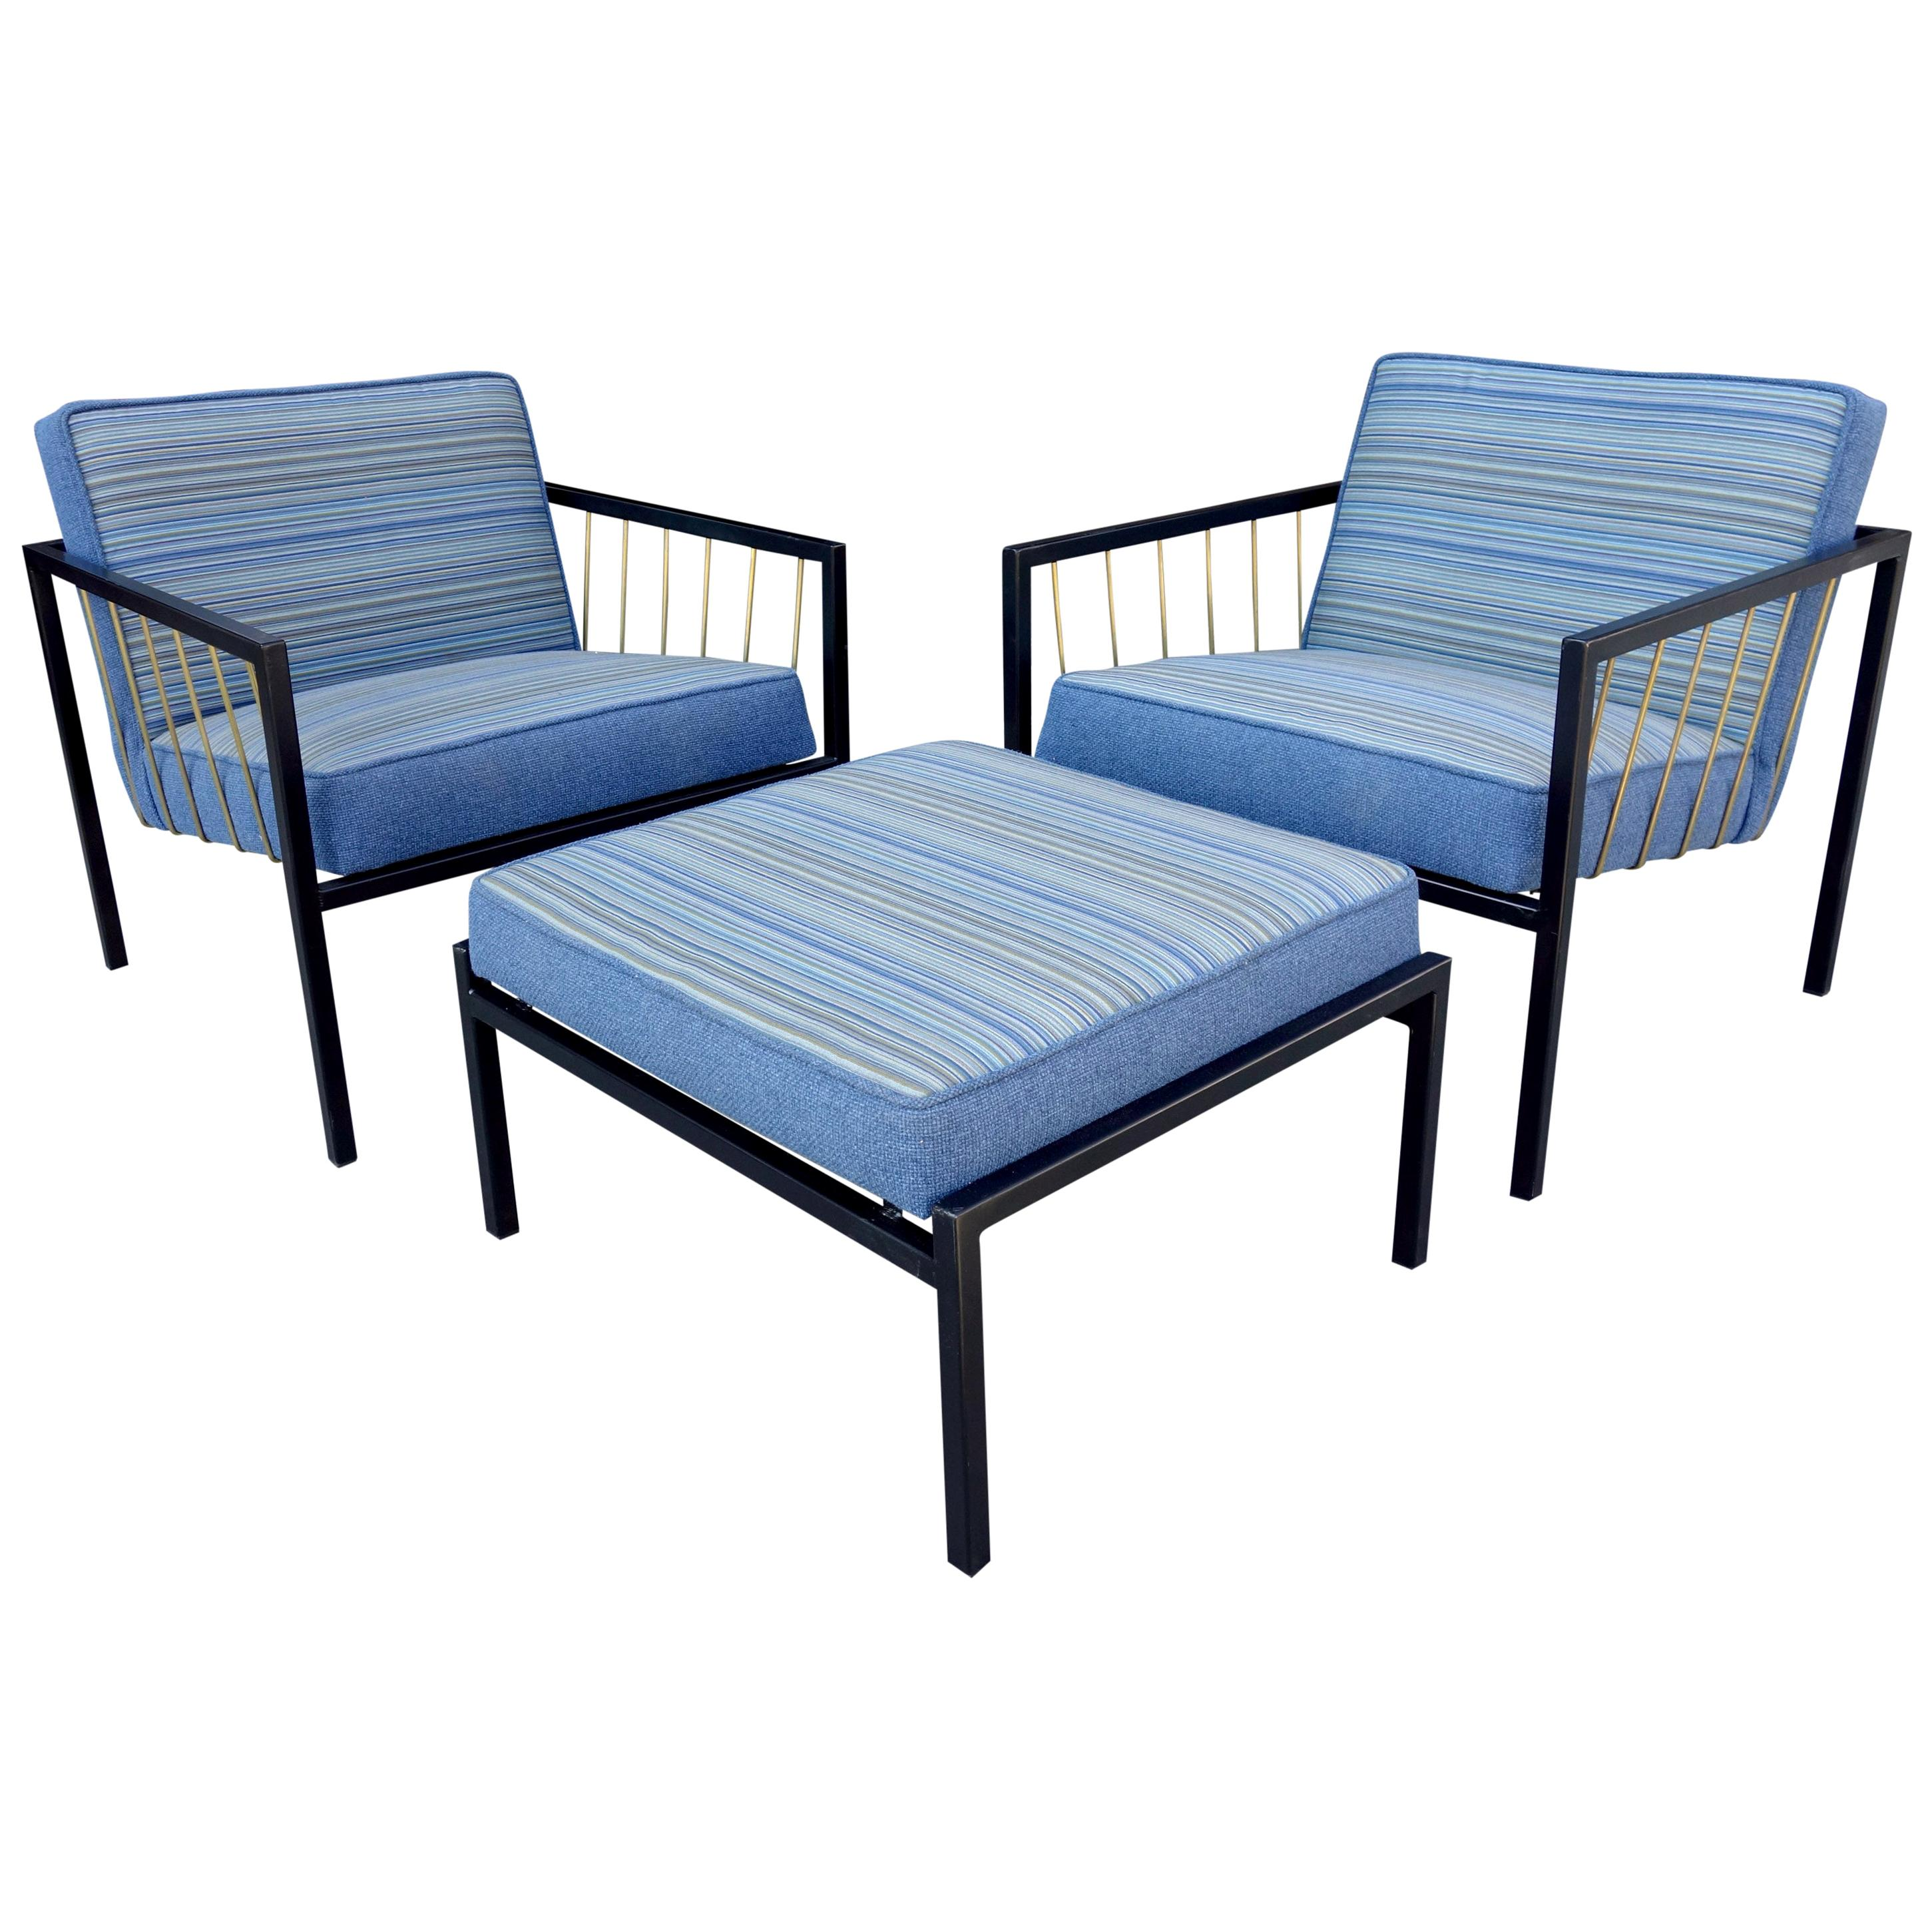 Midcentury Don Knorr Lounge Chairs and Ottoman